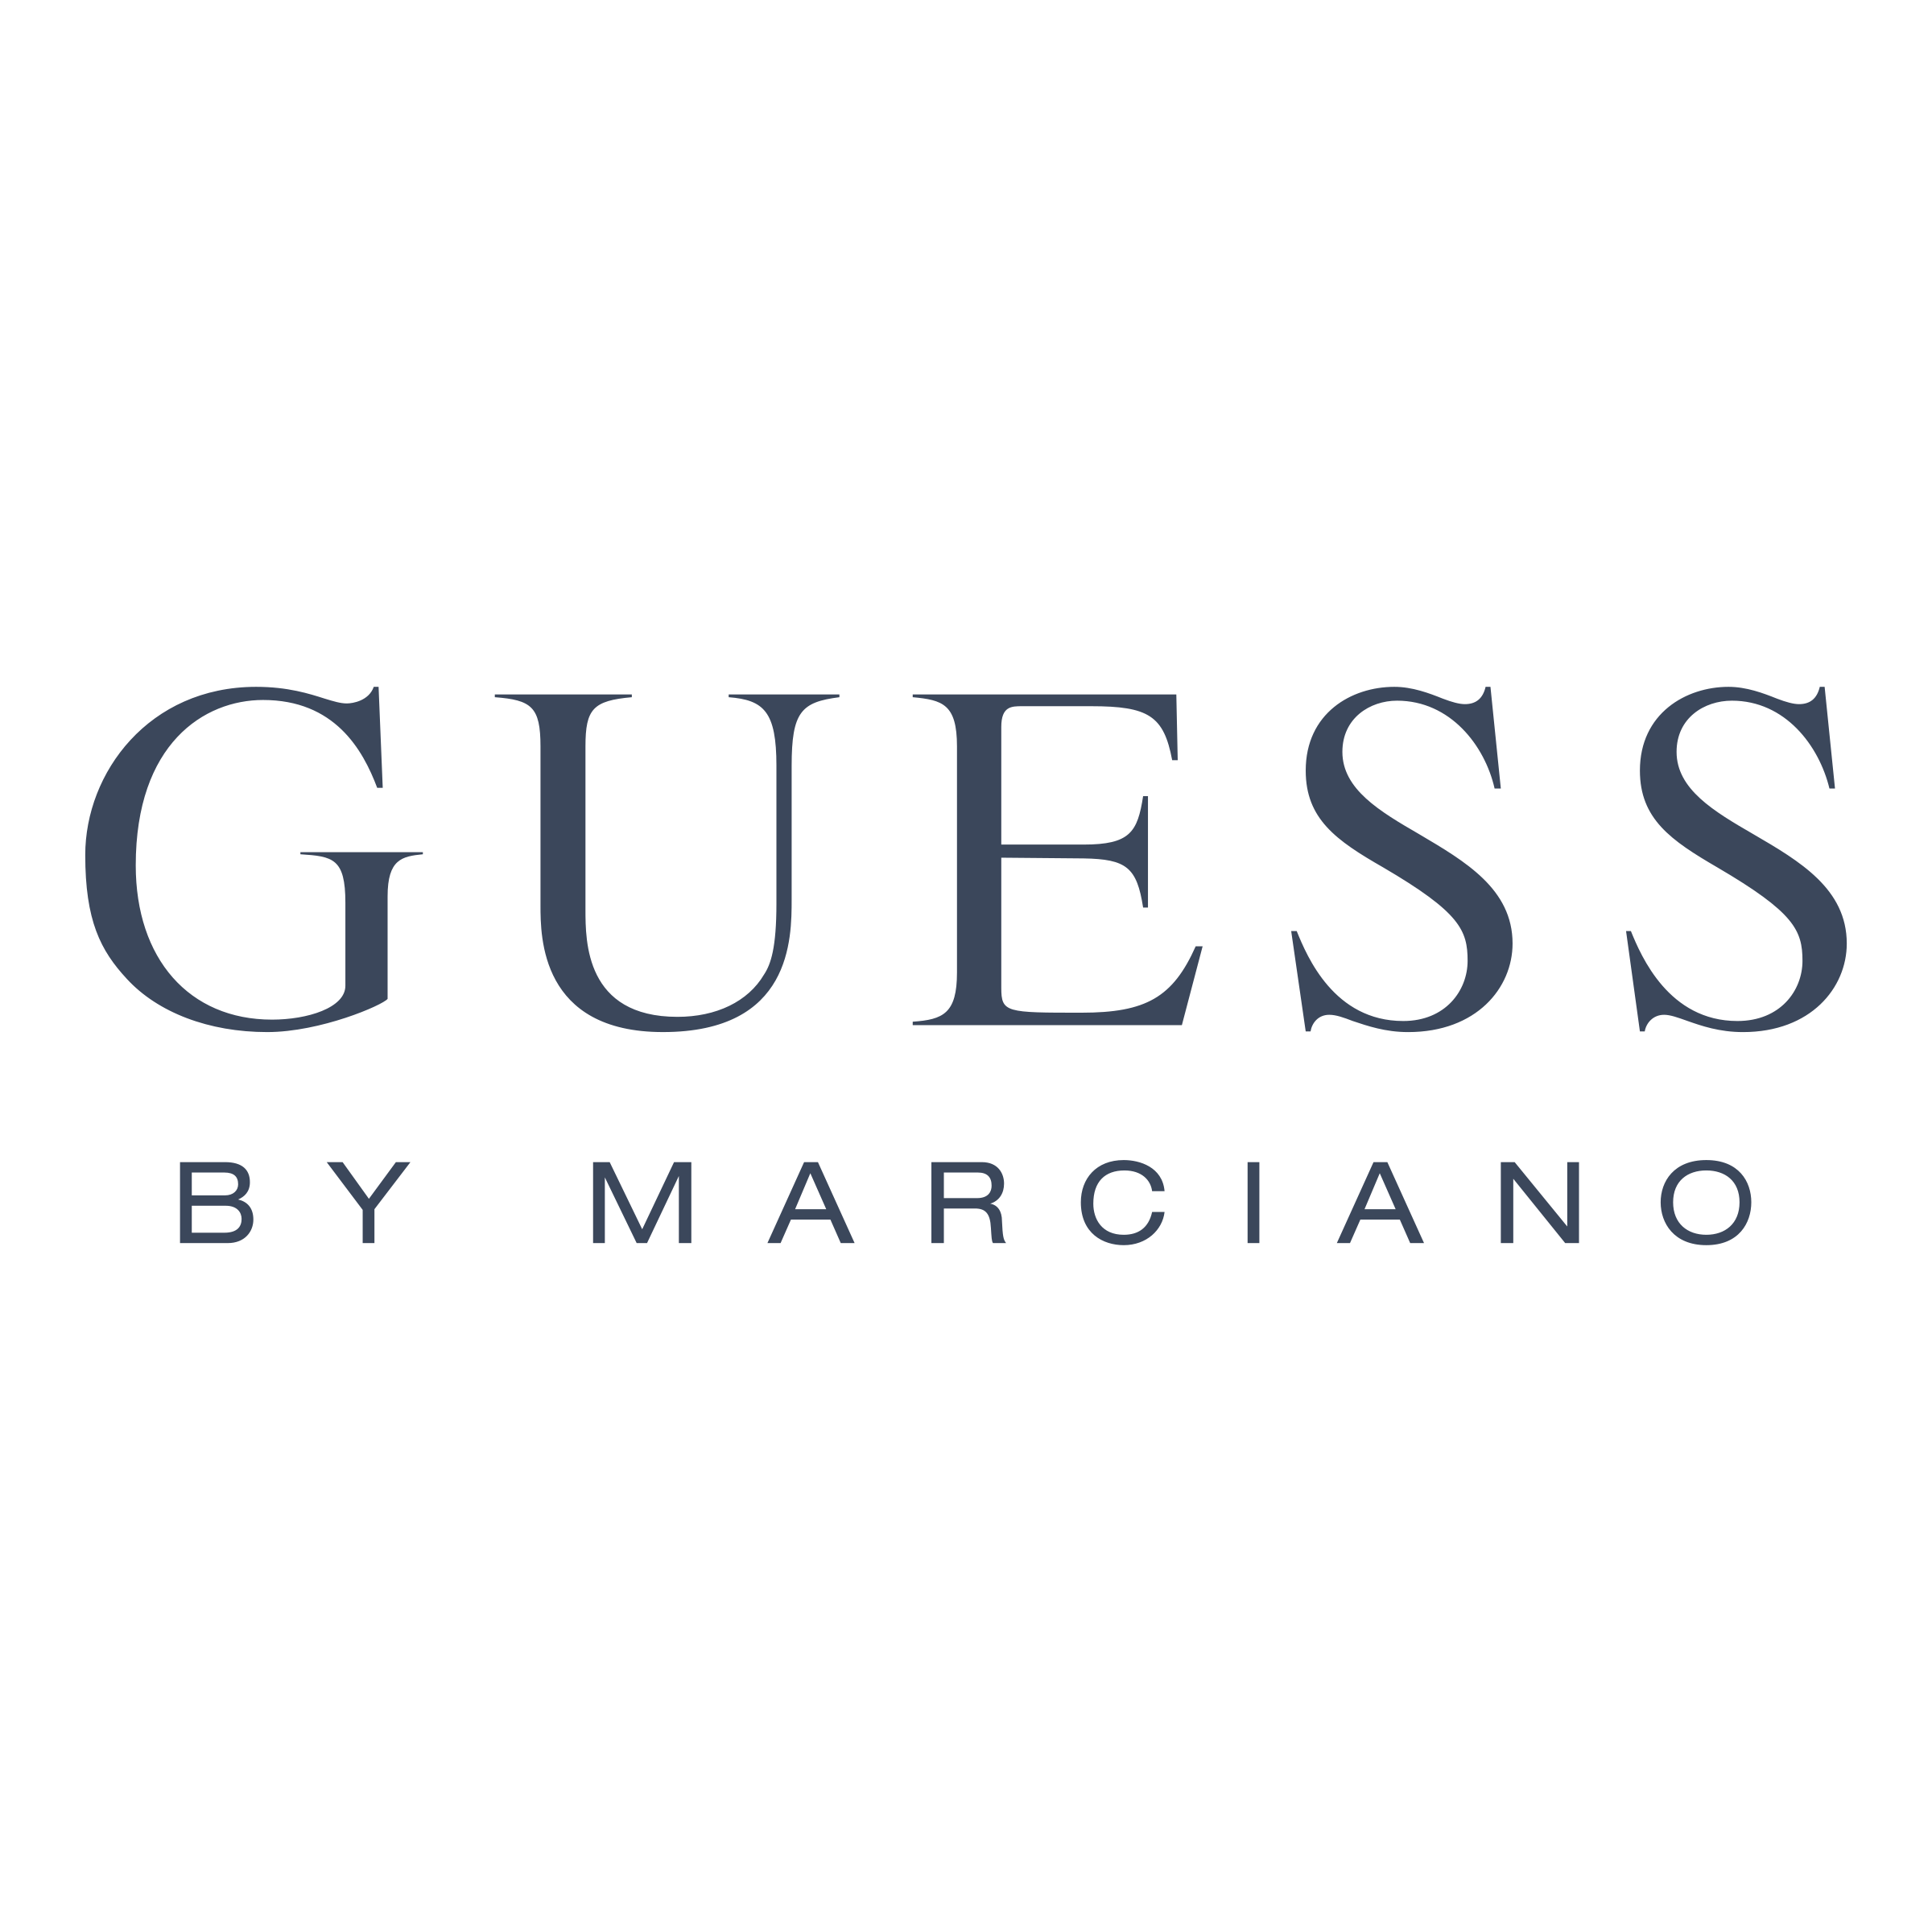 Guess by Marciano Logo PNG Transparent & SVG Vector.